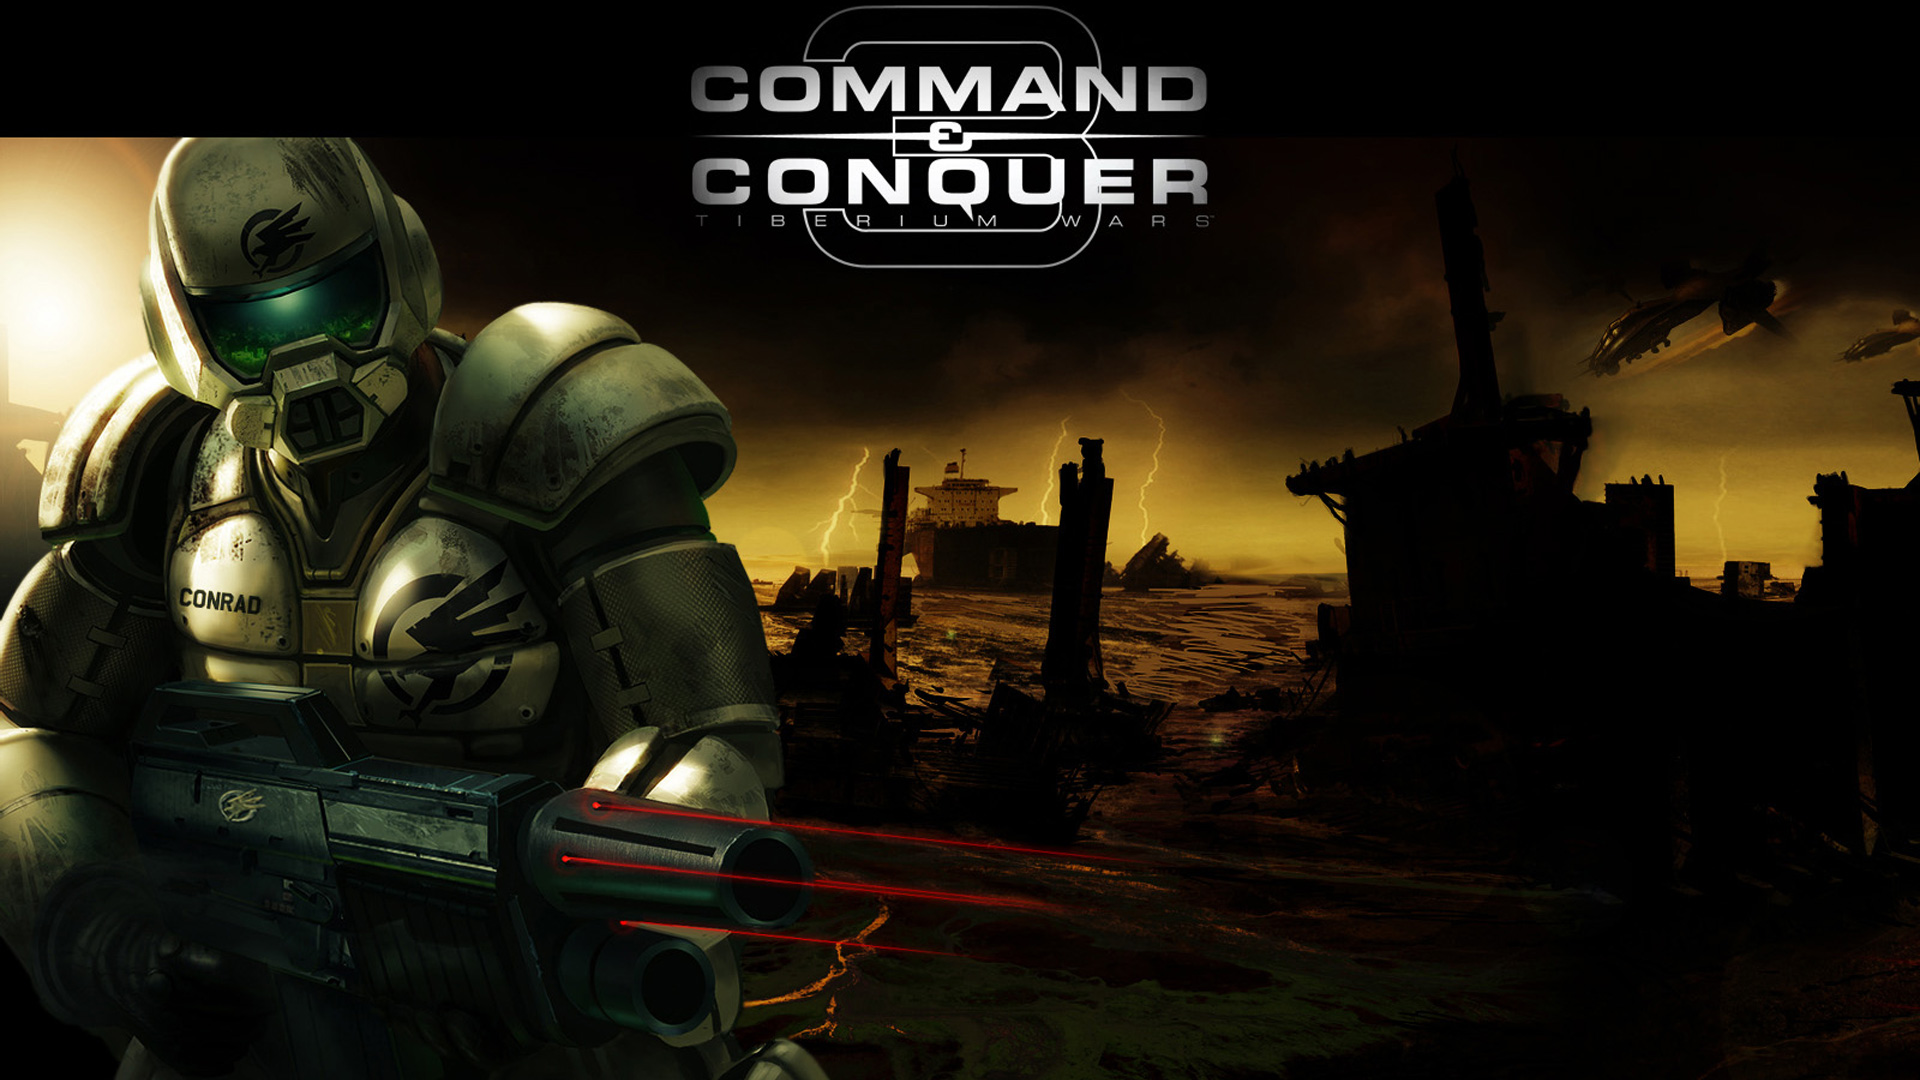 Free Command & Conquer 3 Wallpaper in 1920x1080